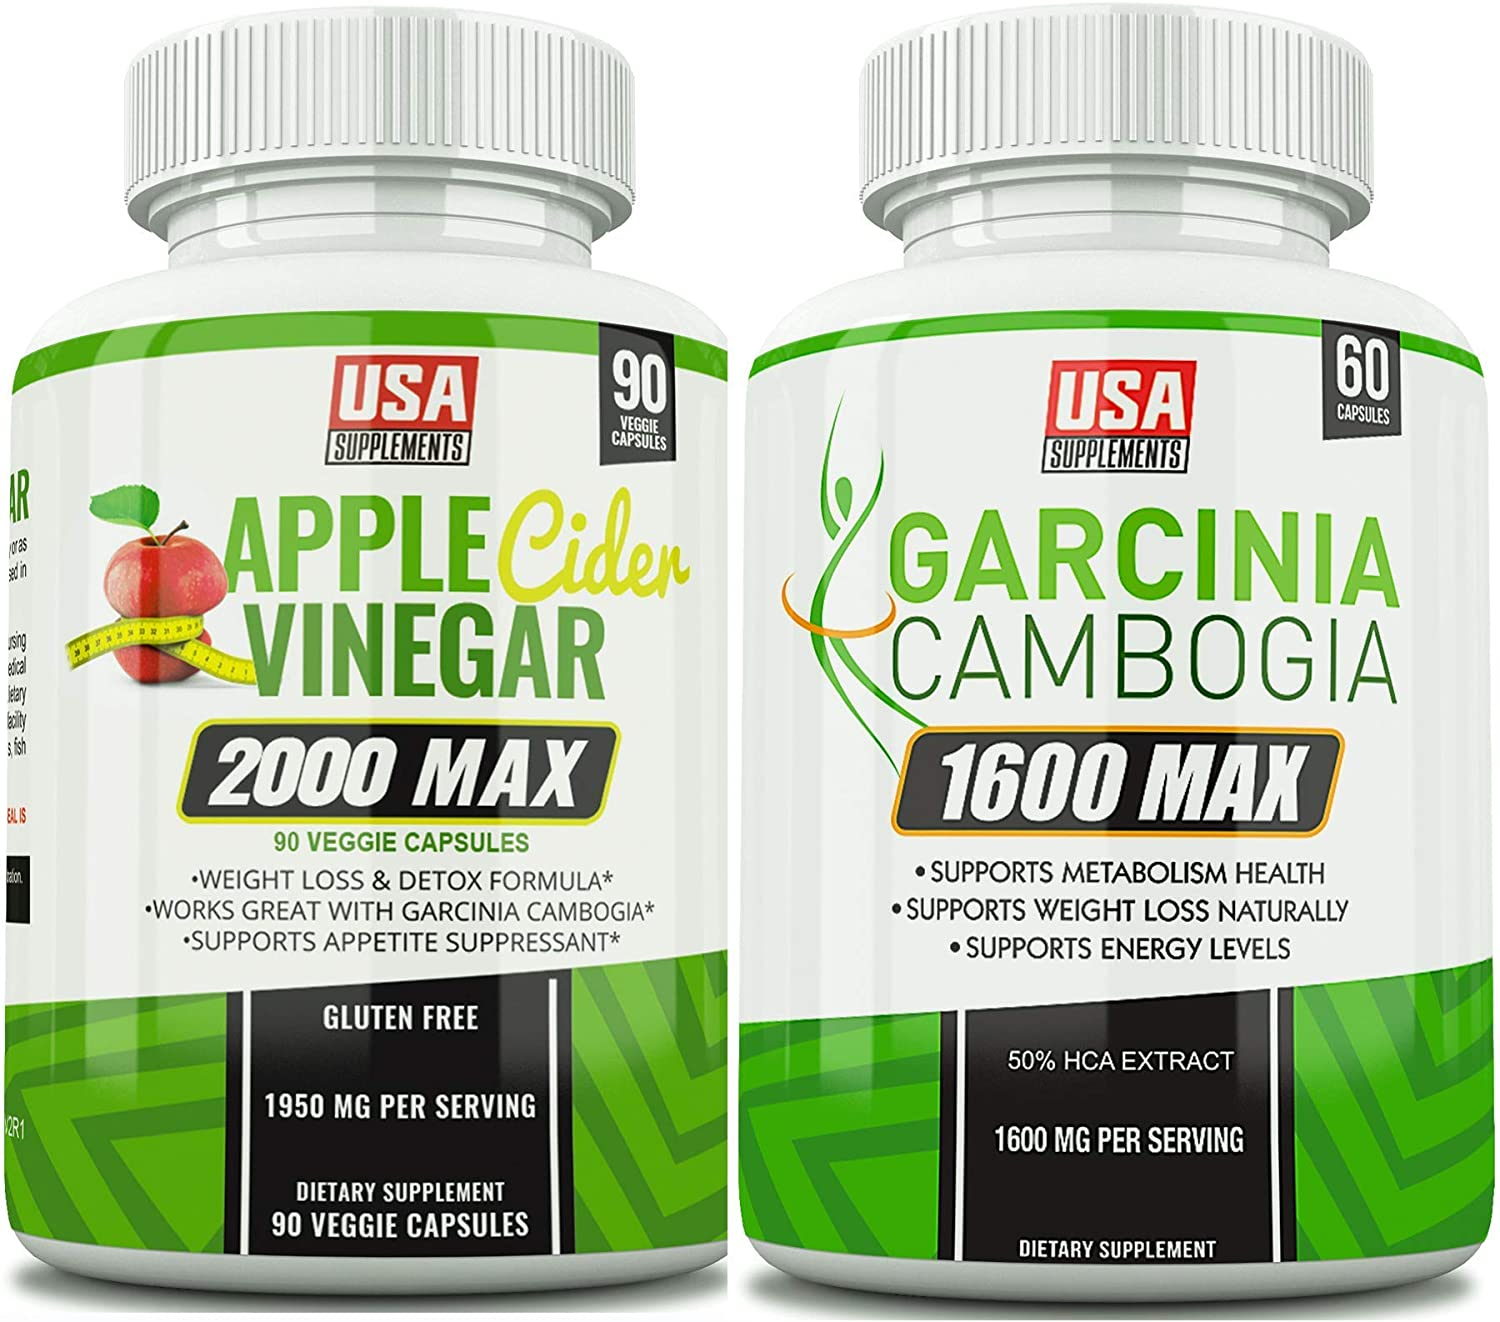 Apple Cider Vinegar Capsules & Garcinia Cambogia (One Bottle of Each)